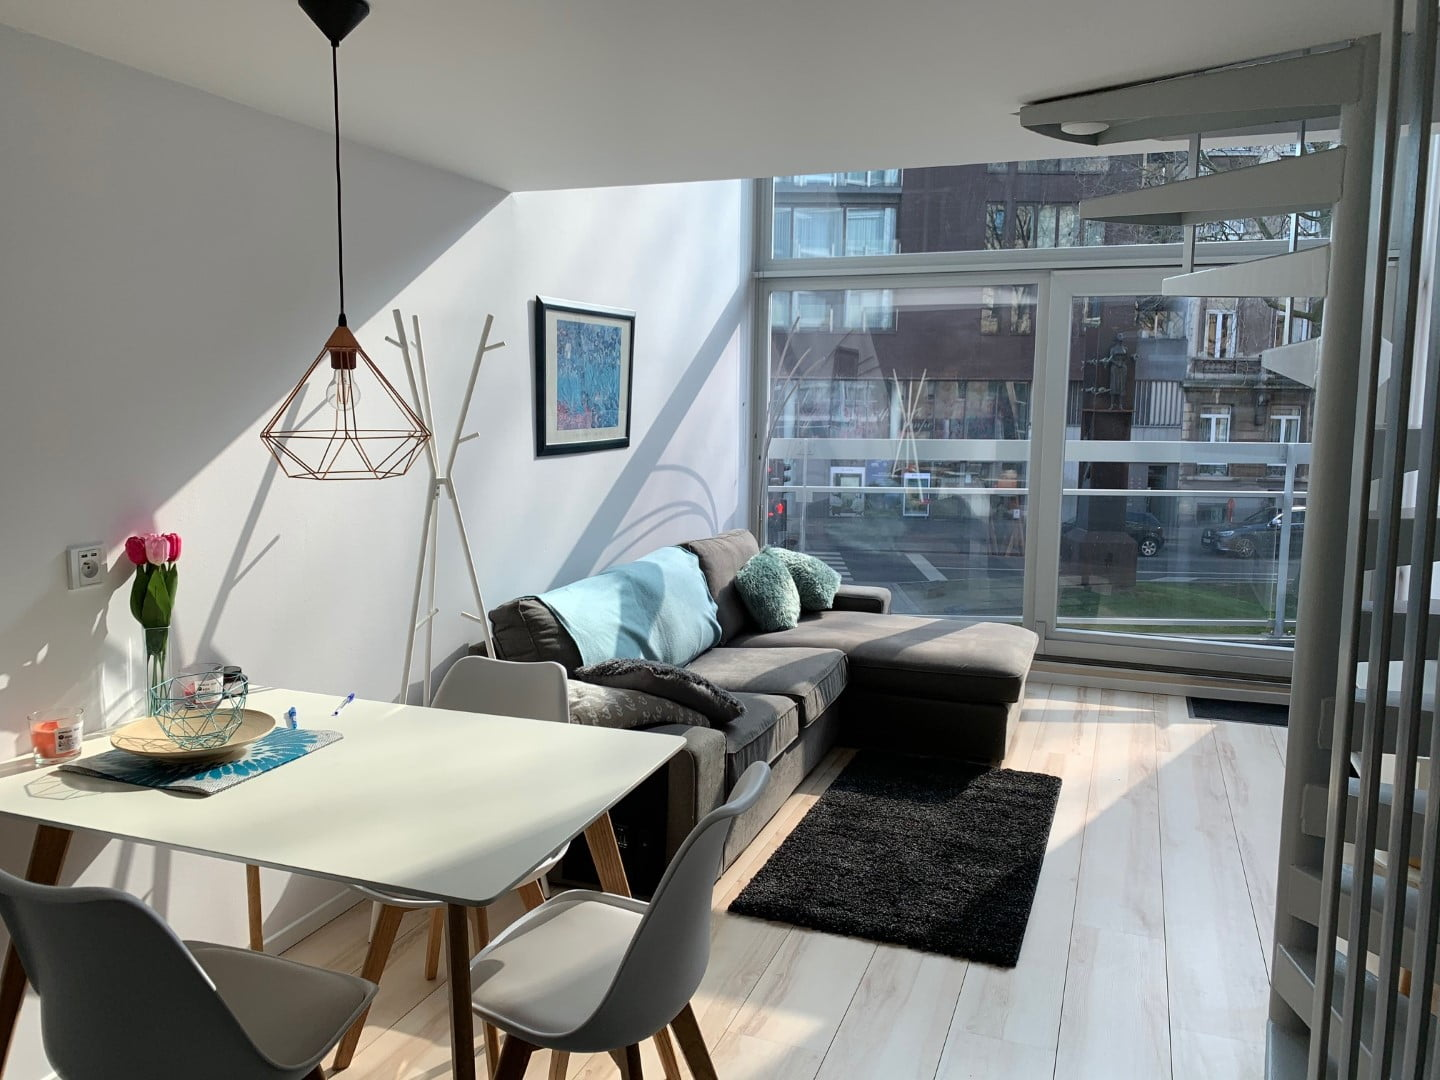 Belgiëlei 4 - Beautiful expat flat in Antwerp